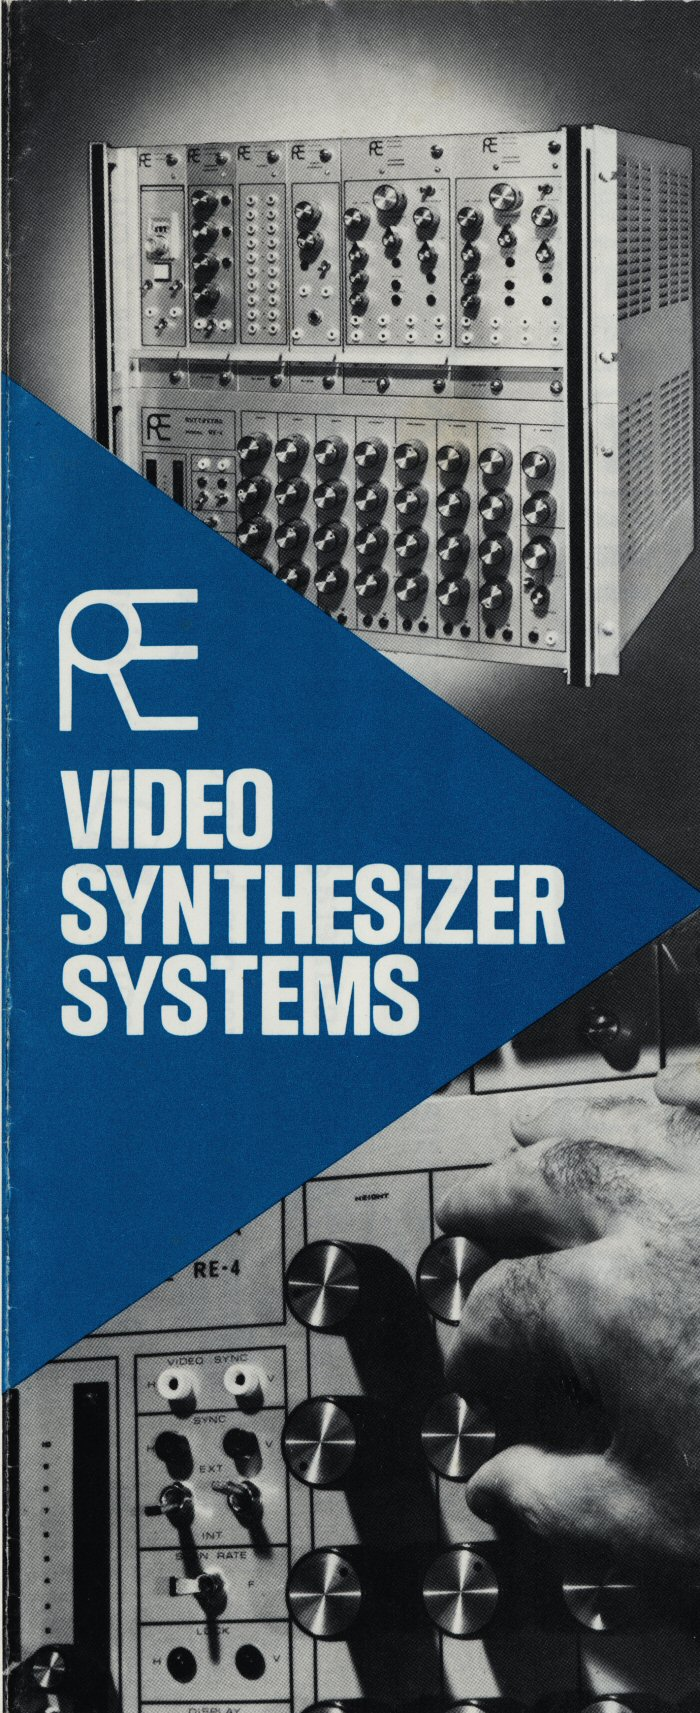 RE video synthesizer systems